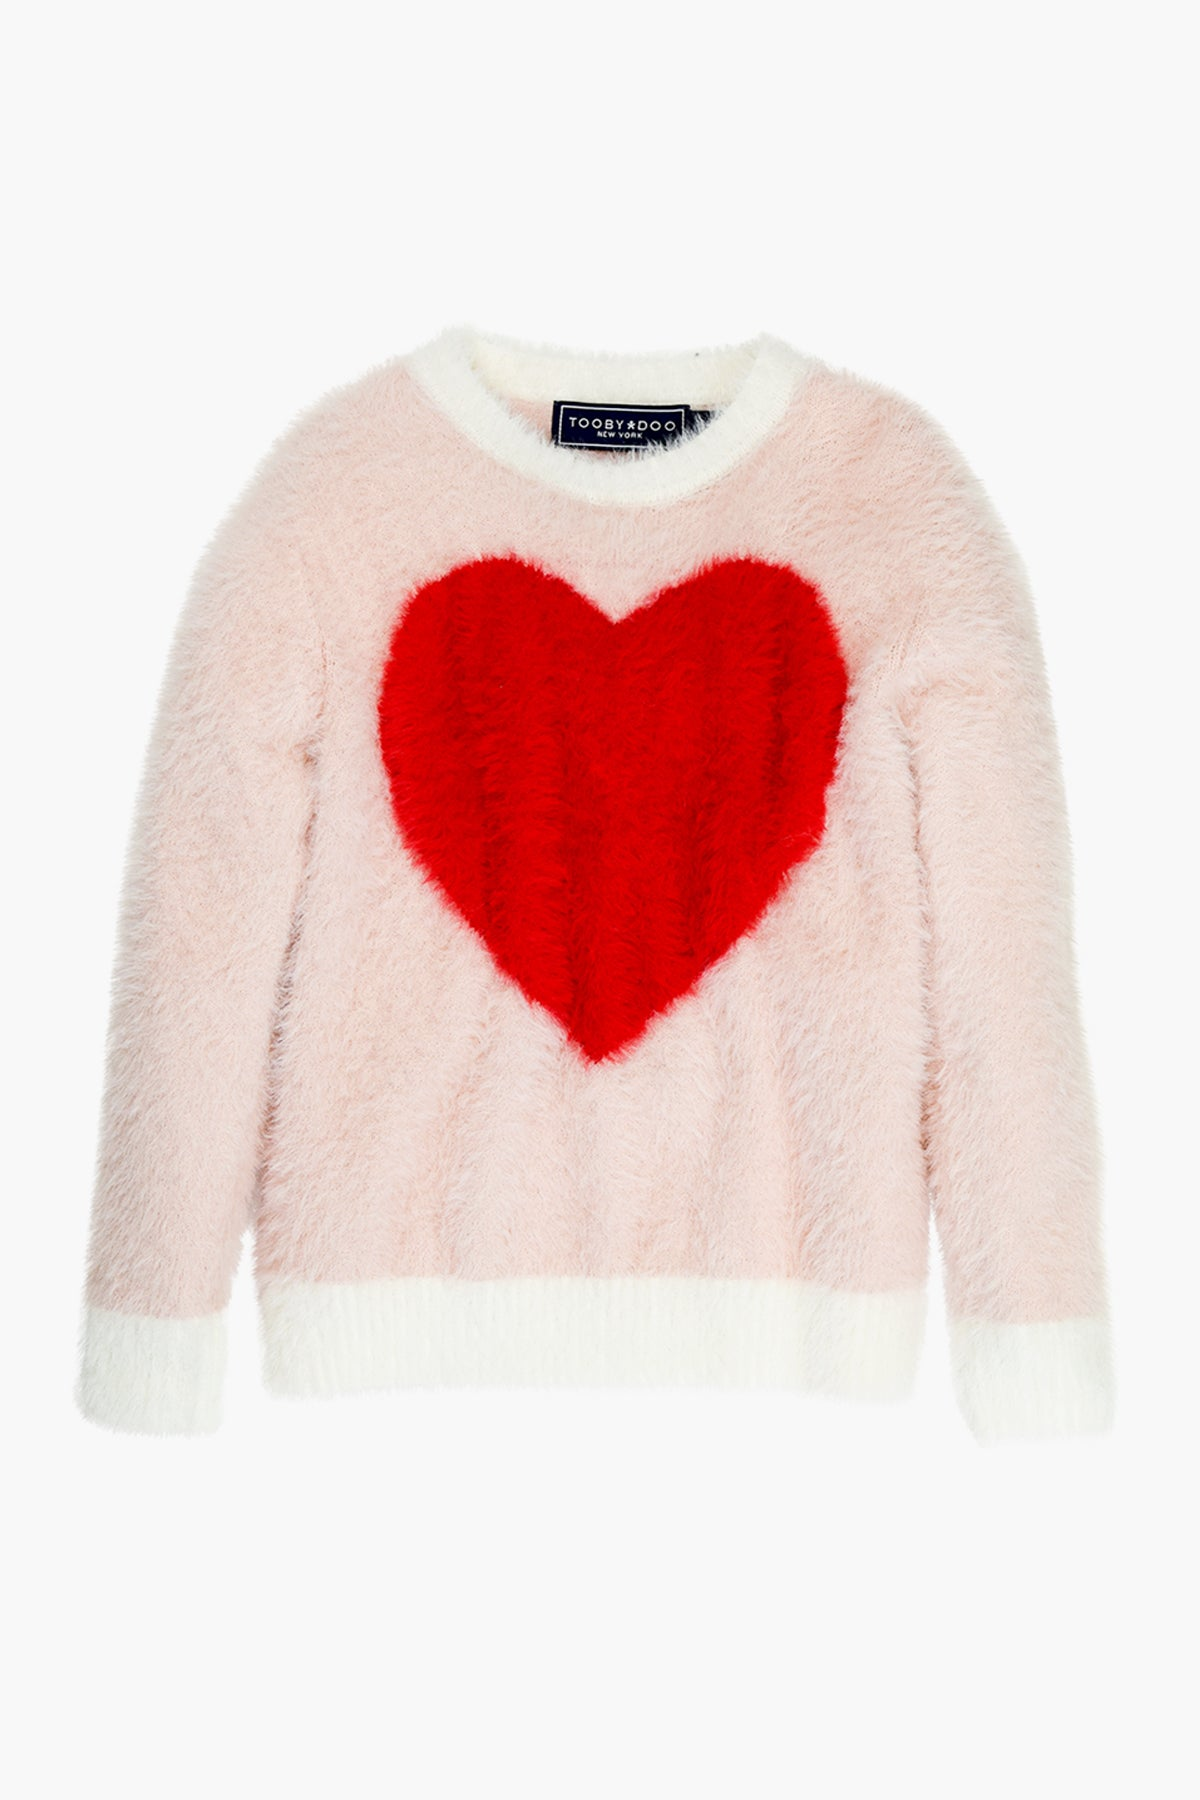 Toobydoo Big Heart Sweater